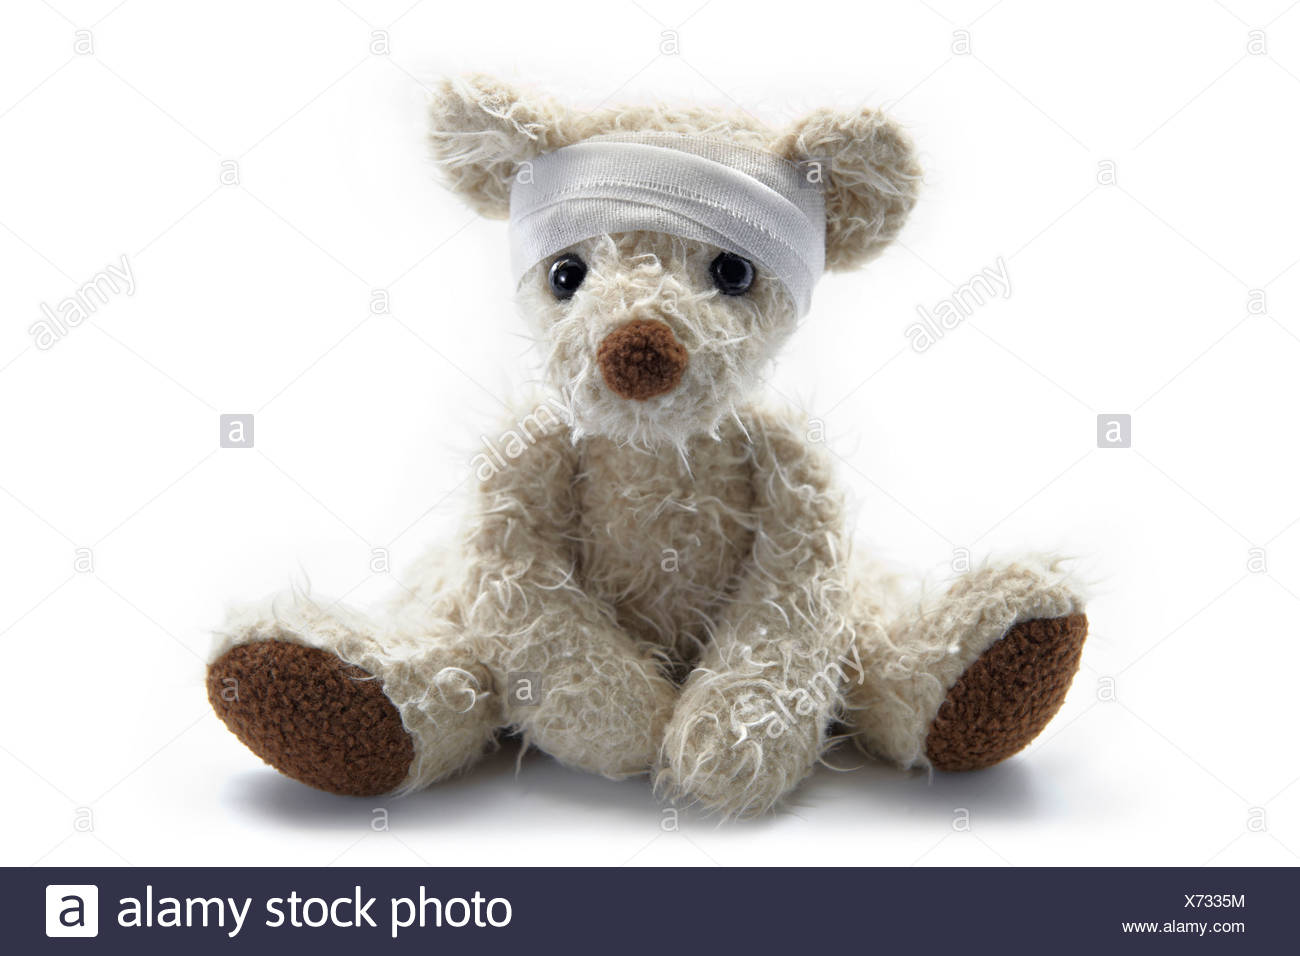 Close-up of a sick teddy bear with bandage around head sitting against white background - Stock Image